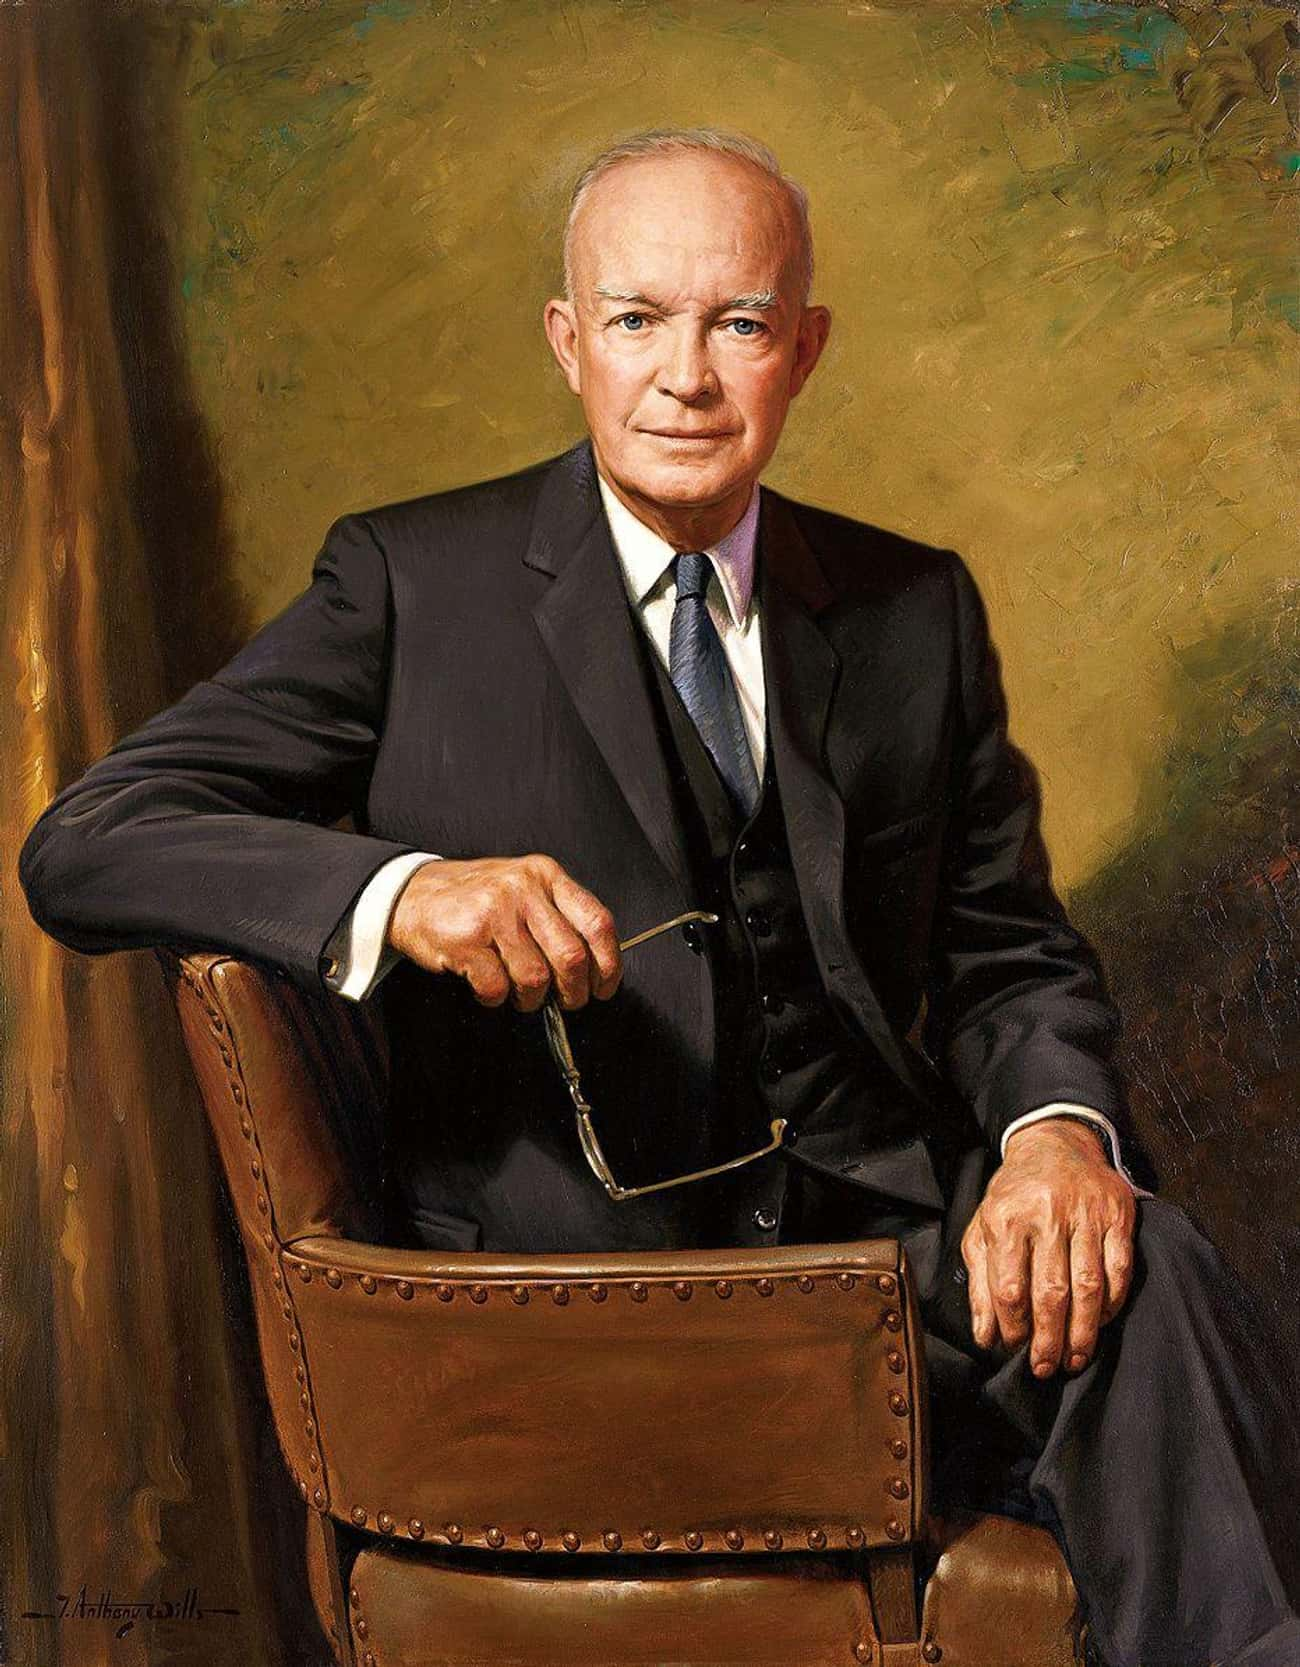 Dwight D. Eisenhower is listed (or ranked) 3 on the list All the Presidential Portraits, Ranked